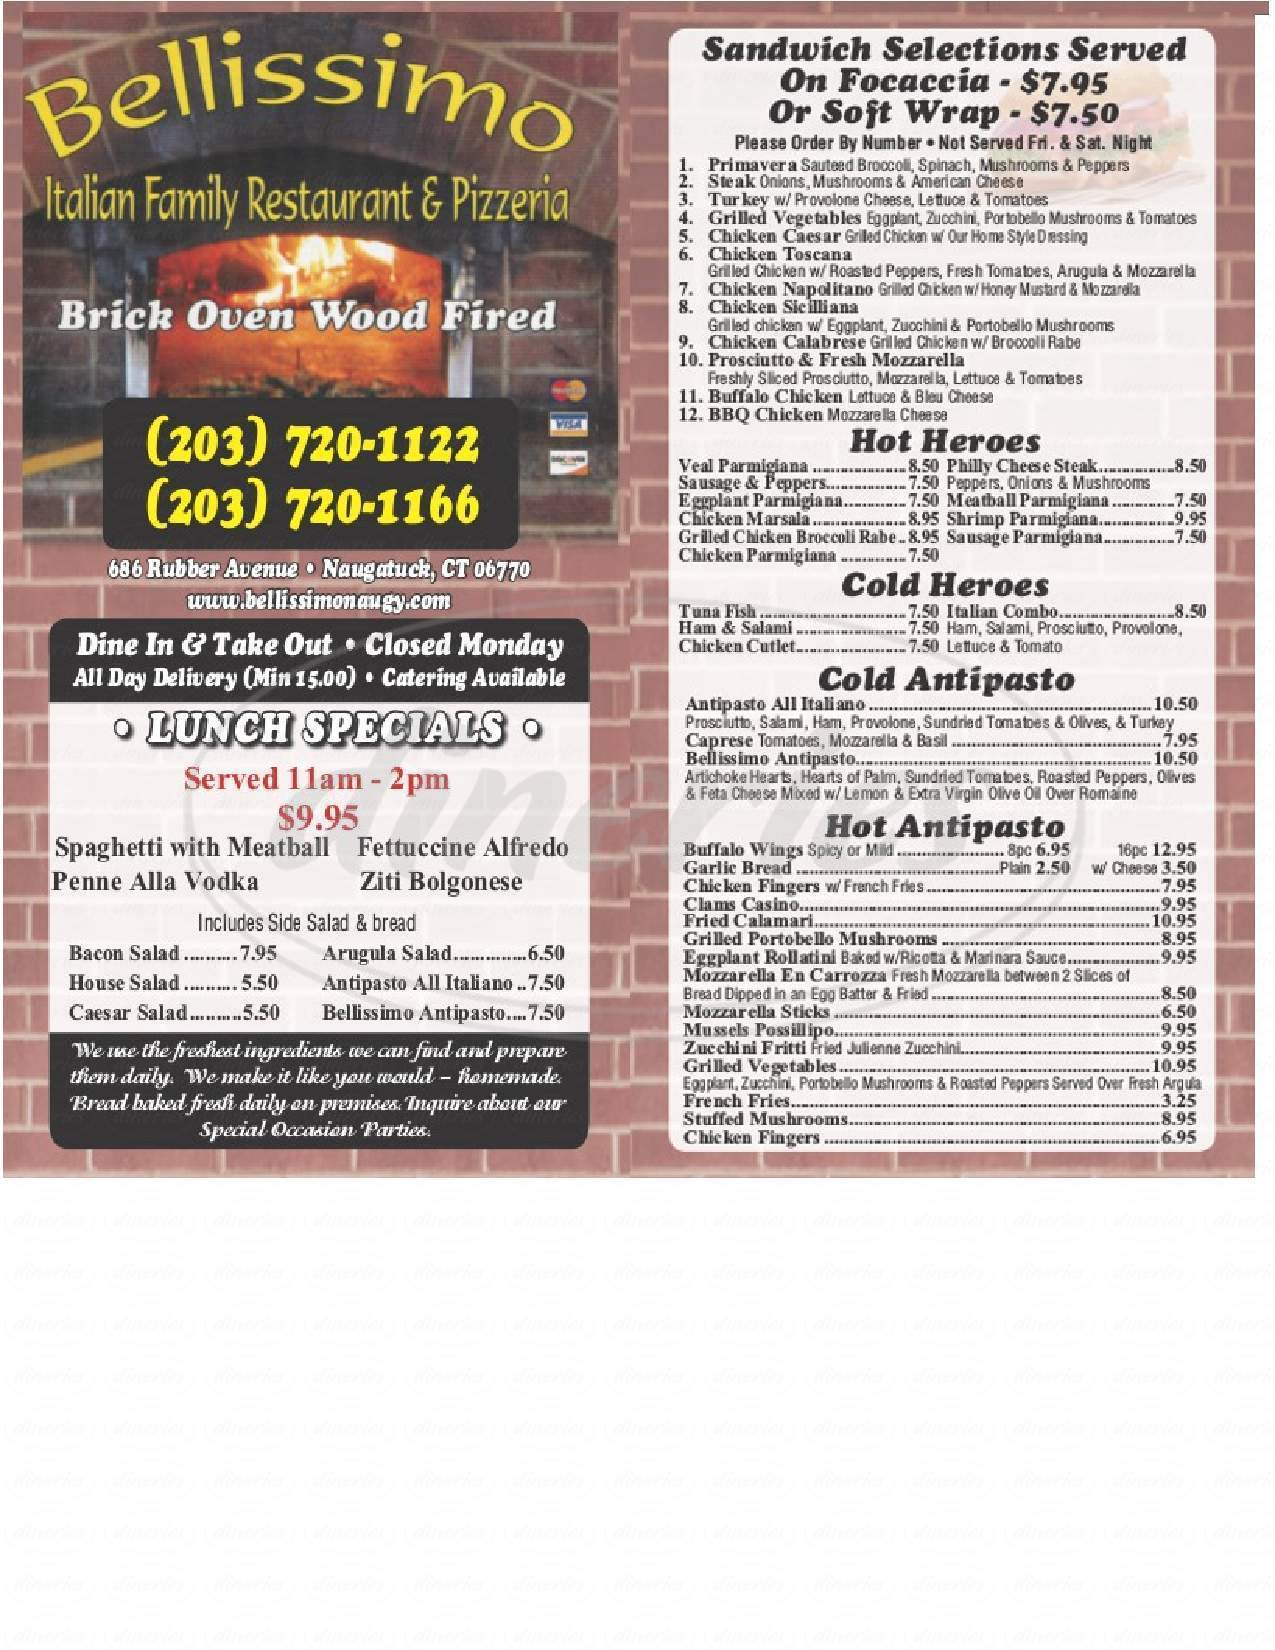 menu for Bellissimo Family Restaurant & Pizzeria